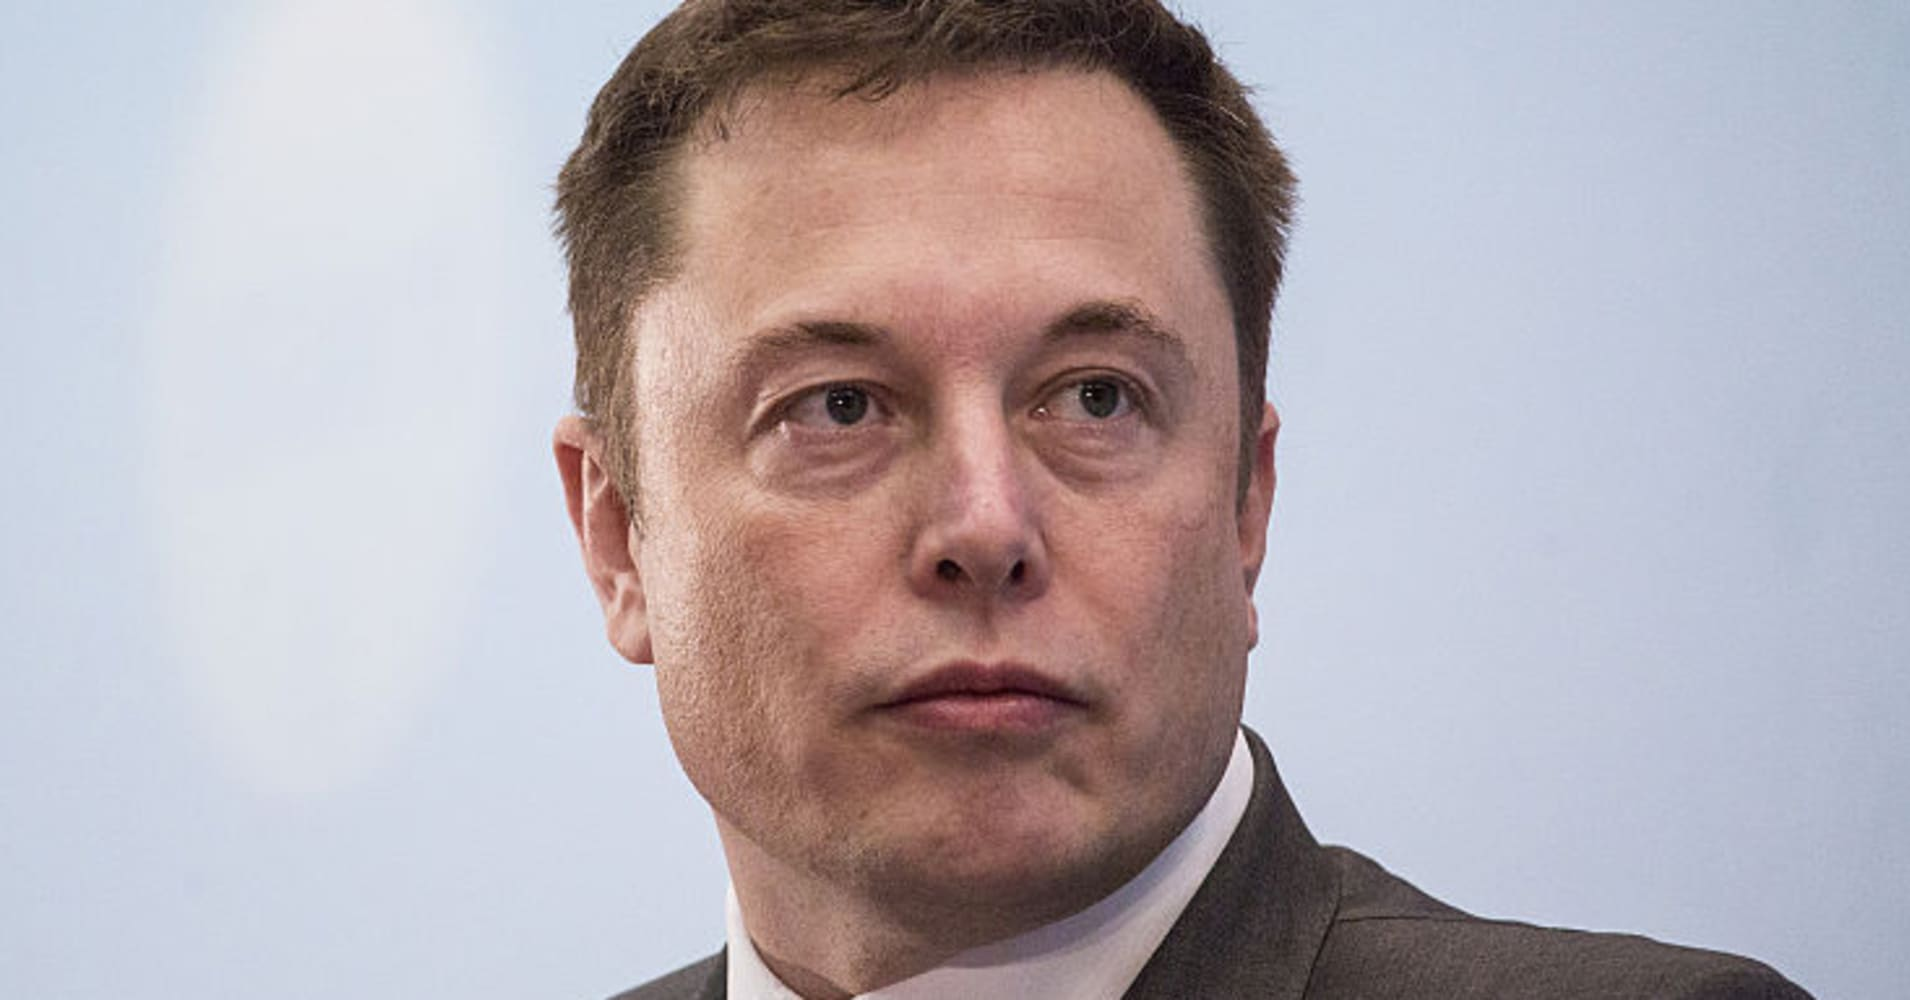 Workers involved in union activities say Tesla is illegally intimidating them